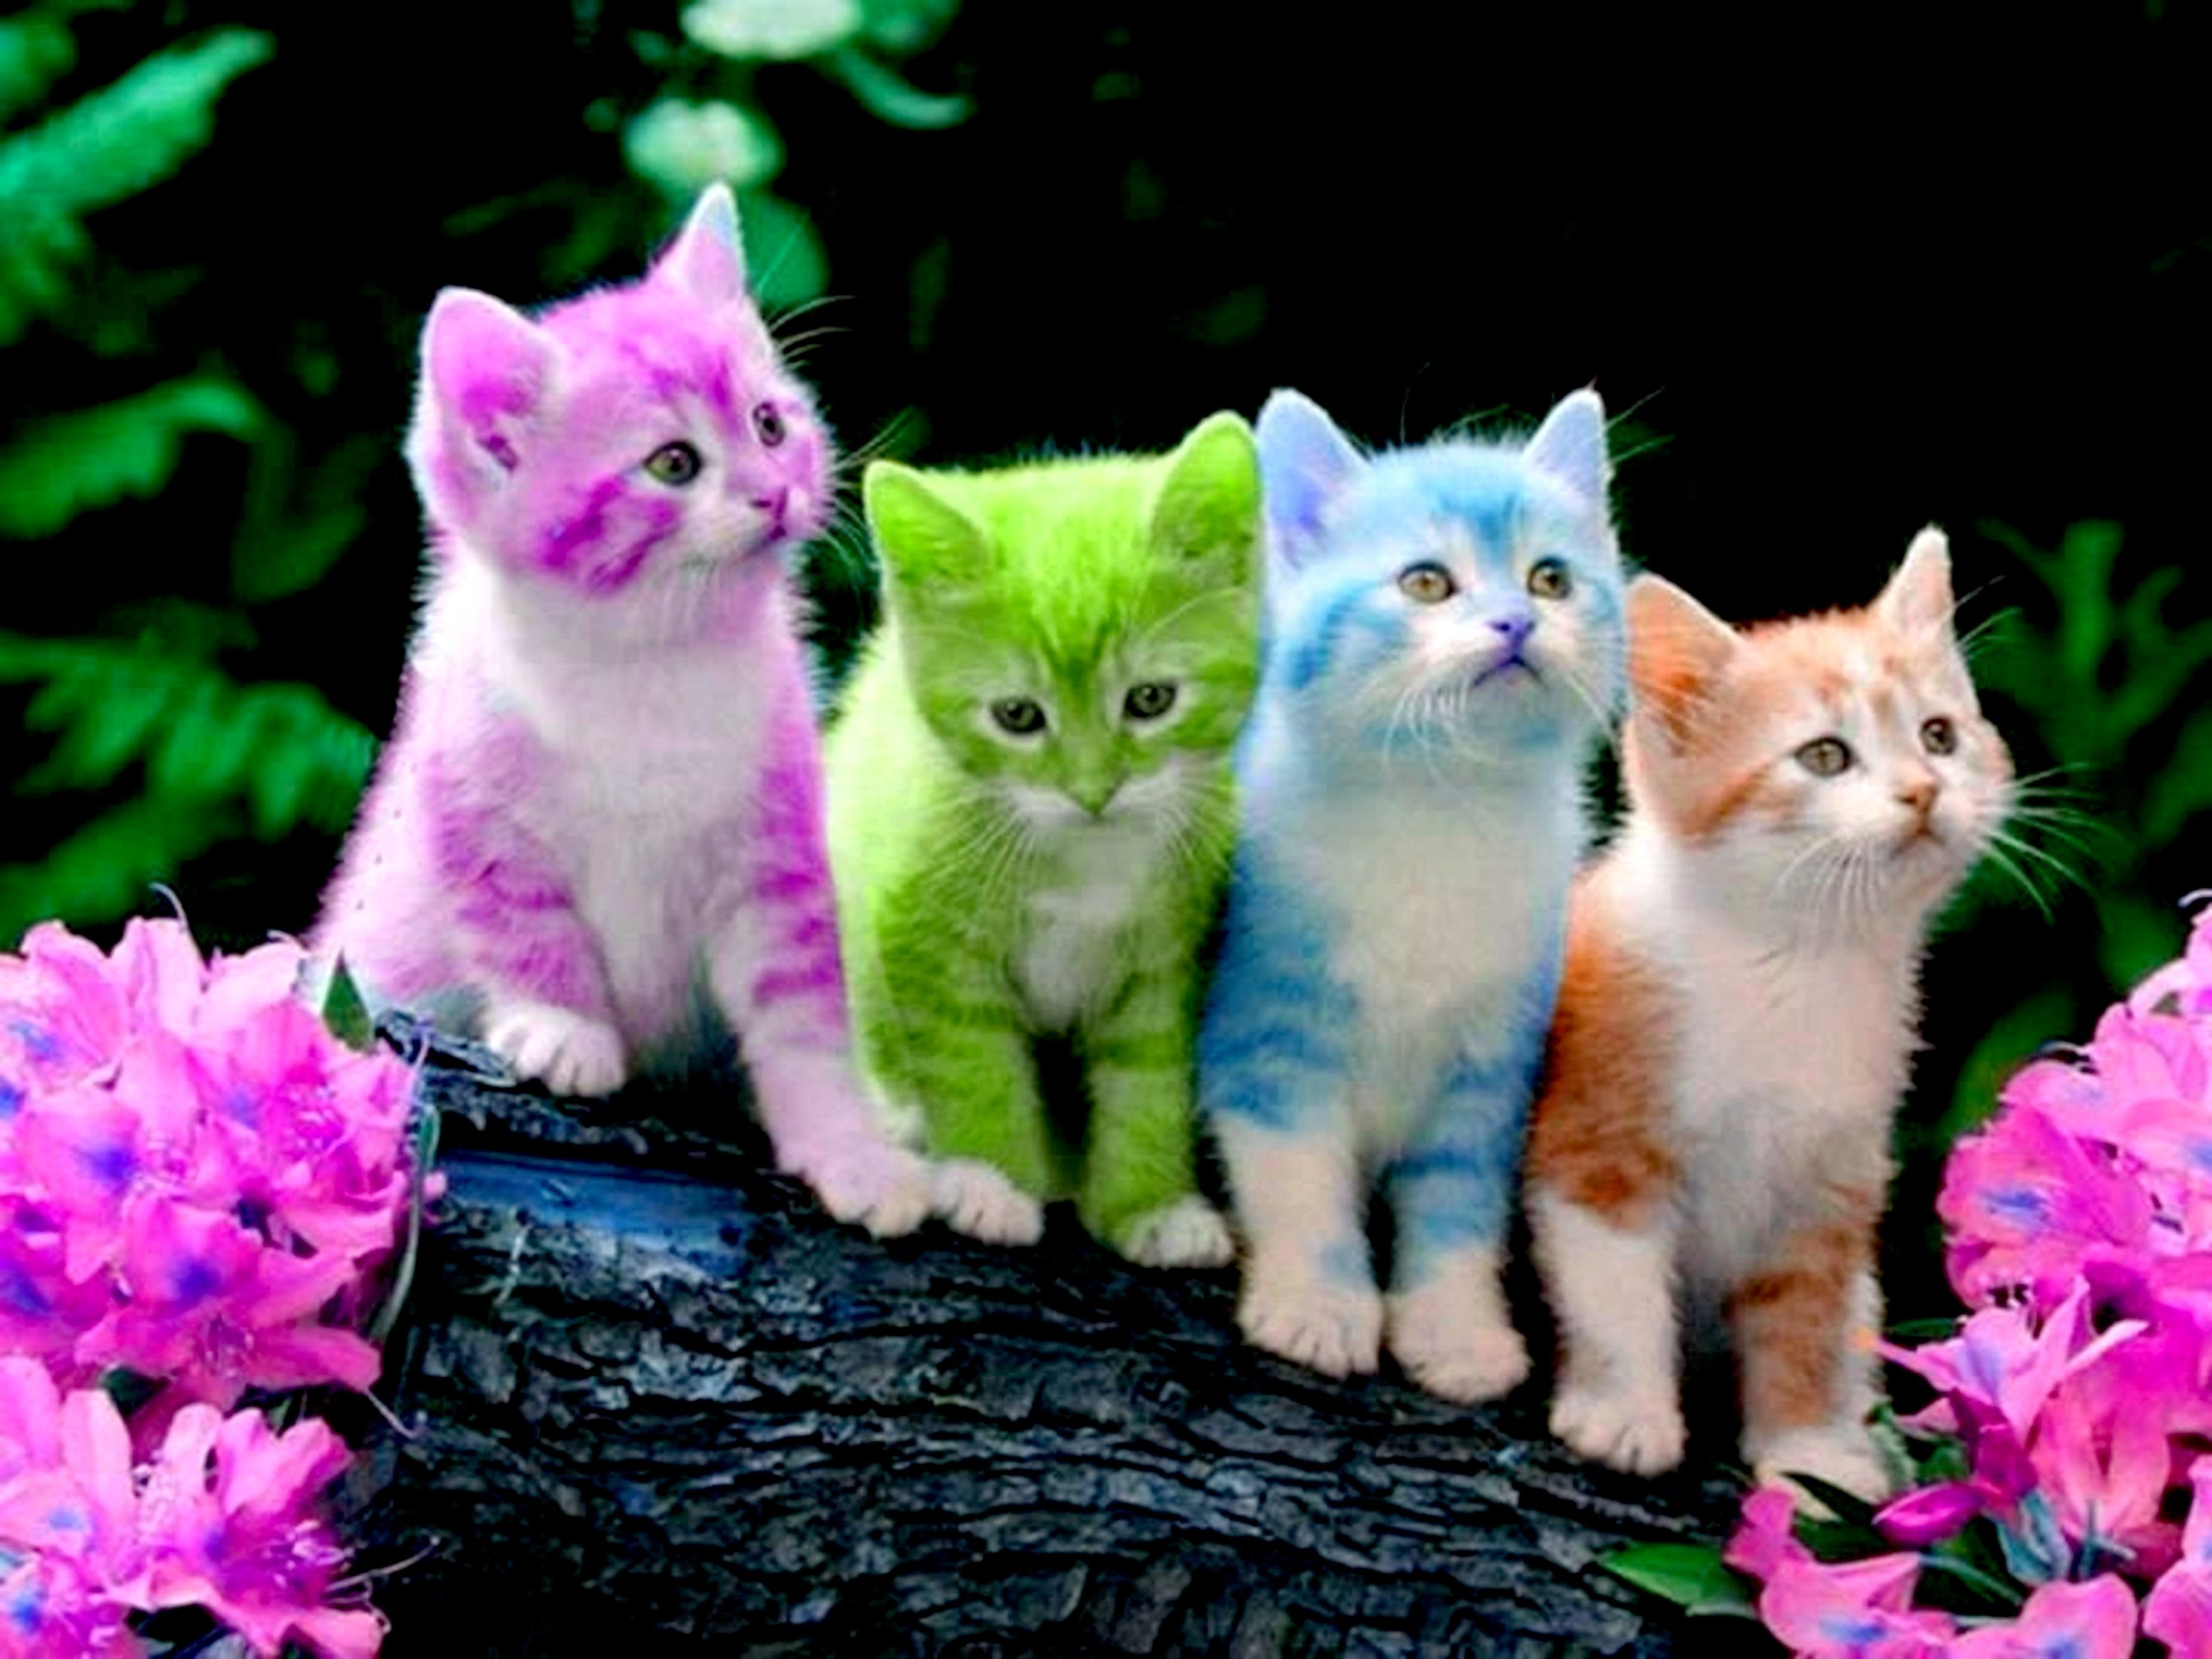 Cute kitten pictures wallpaper 60 images 2880x2160 2880x2160 free cute kitten wallpapers wallpaper altavistaventures Images